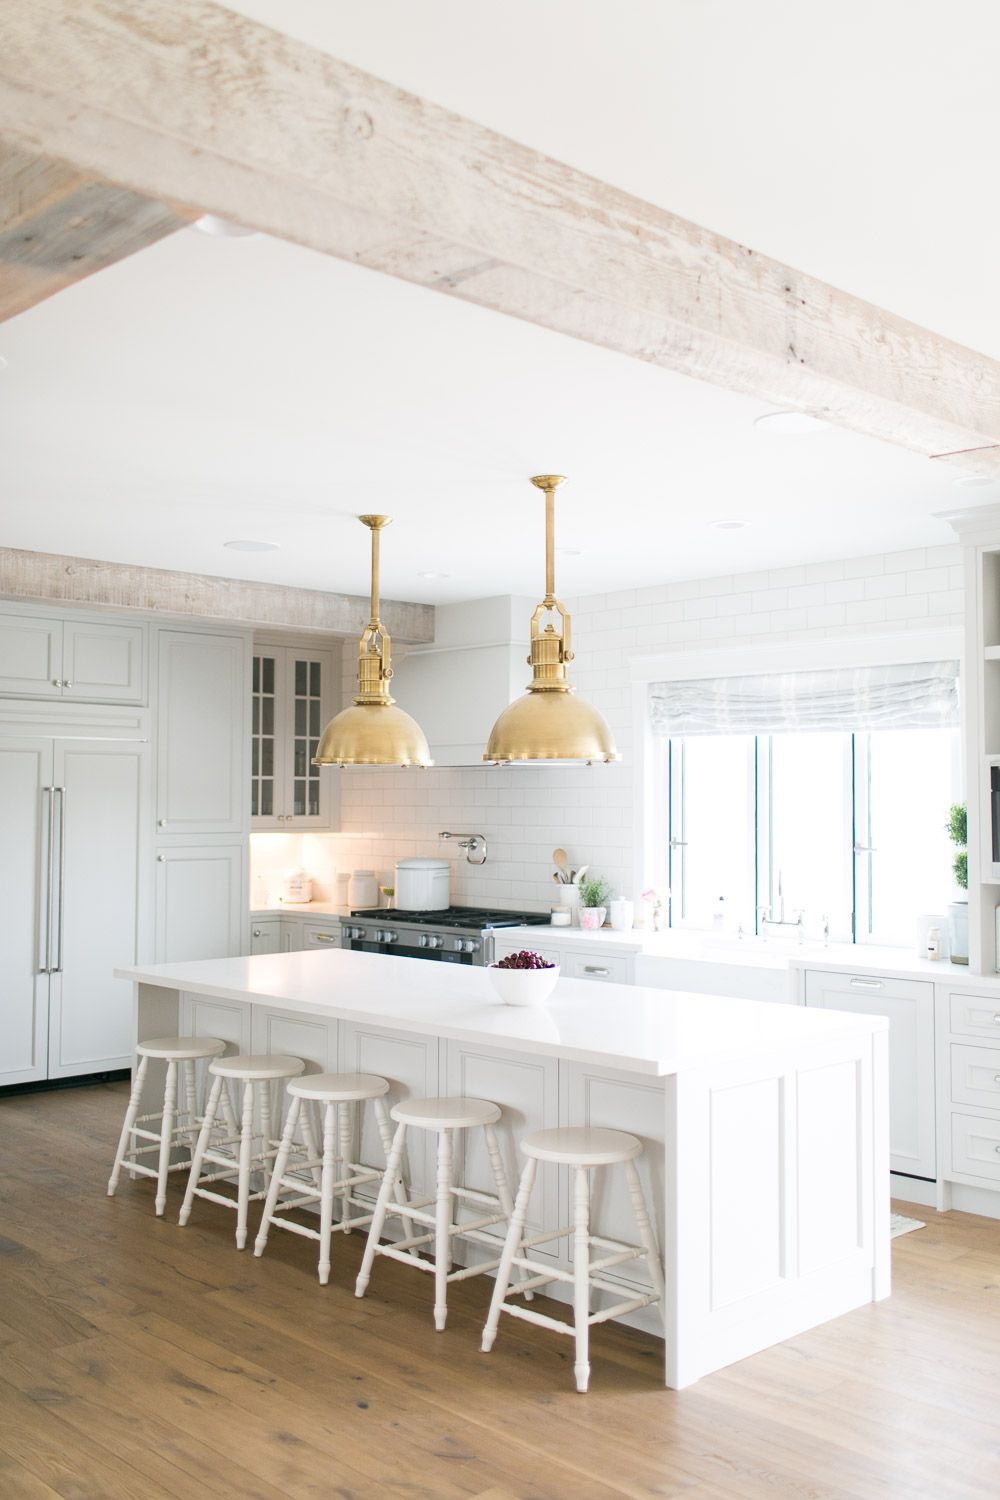 What To Know During A Home Renovation Interior Design Kitchen Home Renovation Home Kitchens